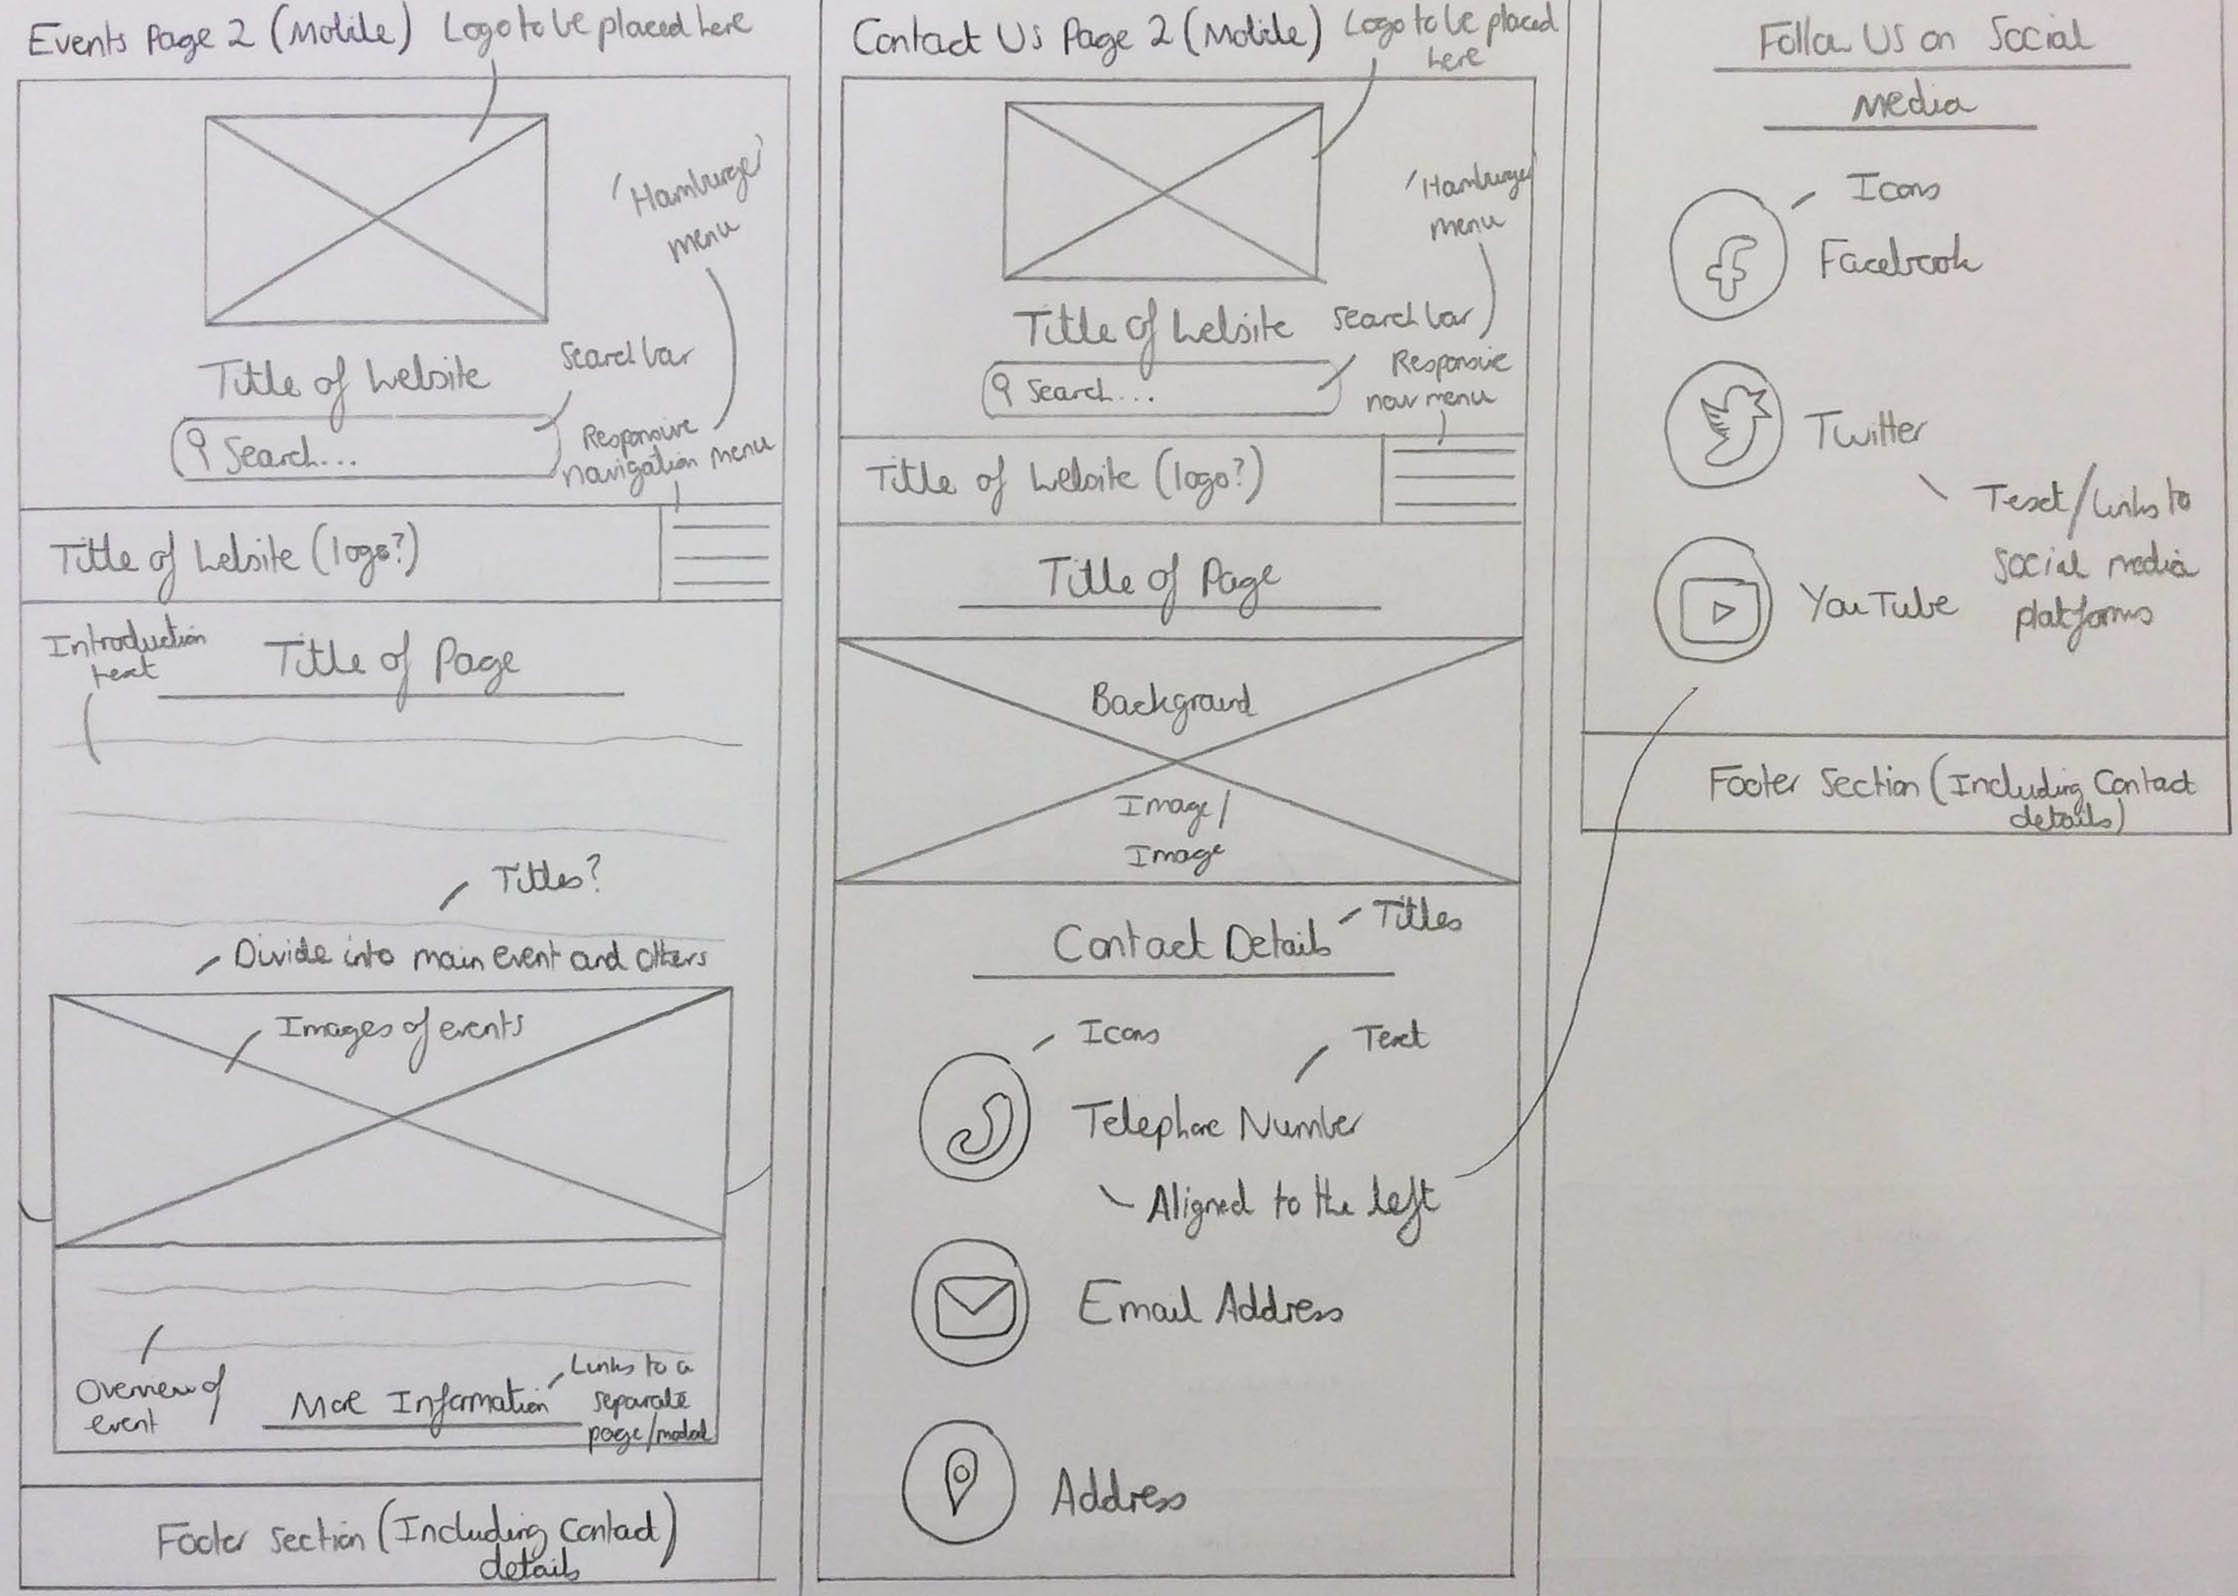 The Sketched Events and Contact Us (Parts 1 and 2) Pages Wireframes